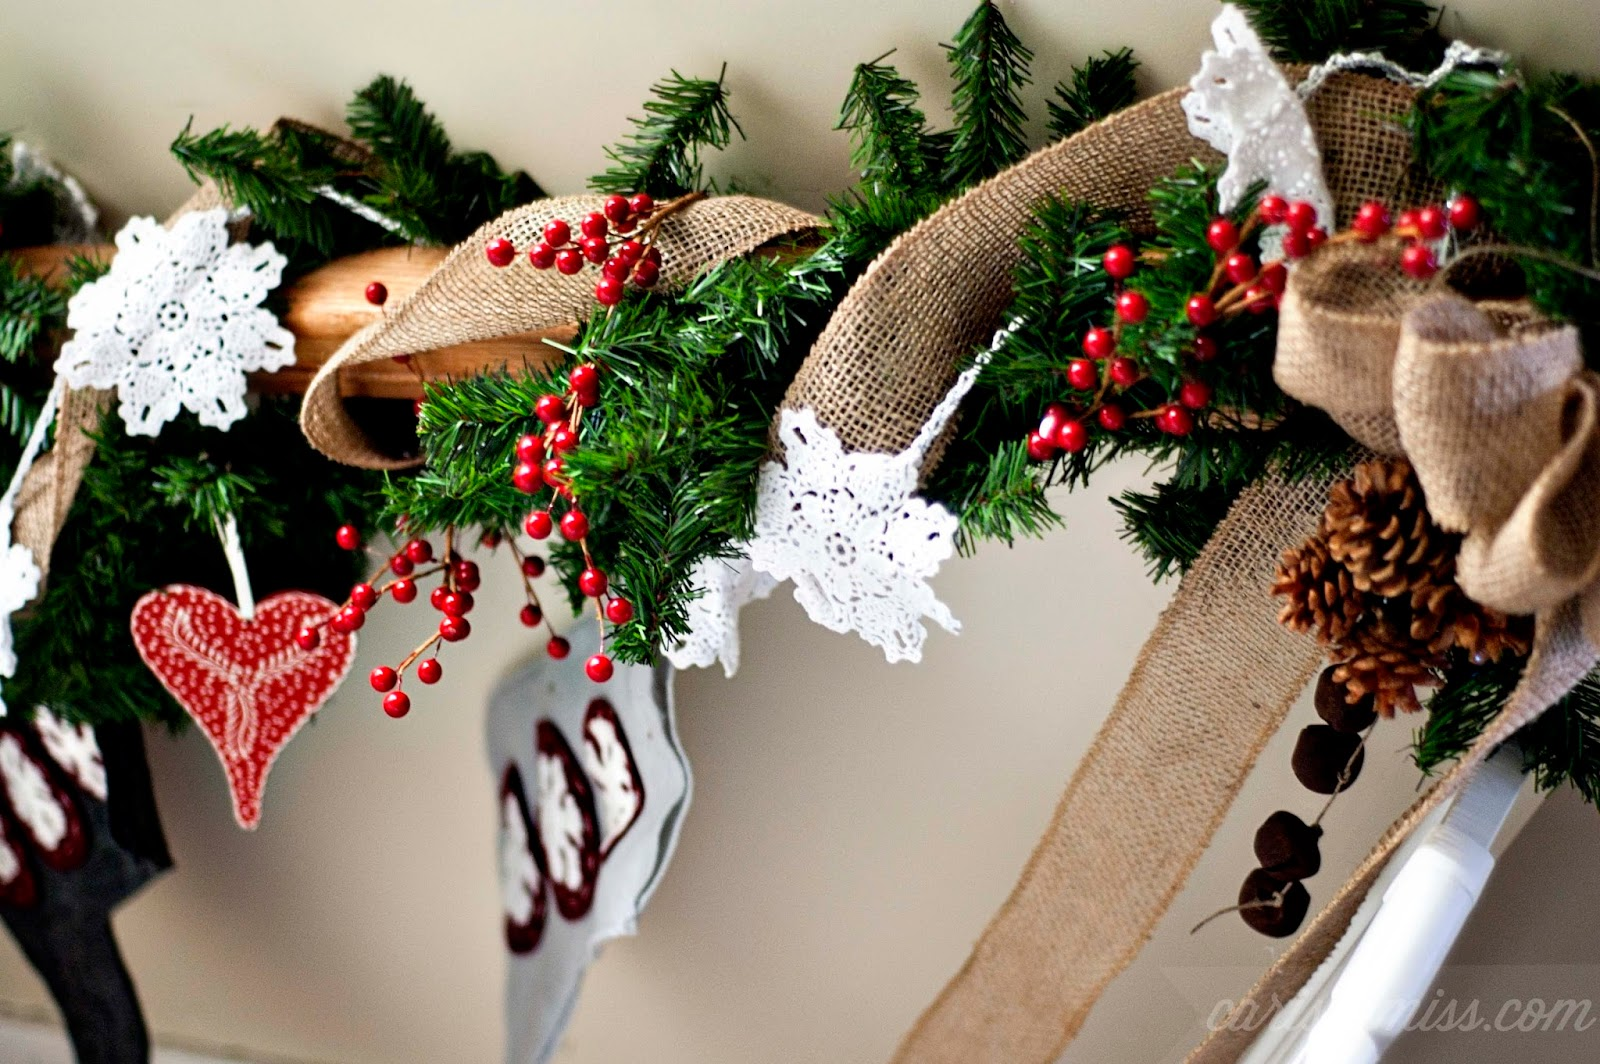 Carissa Miss: Rustic Pine Bough Garland #HandmadeHoliday14.